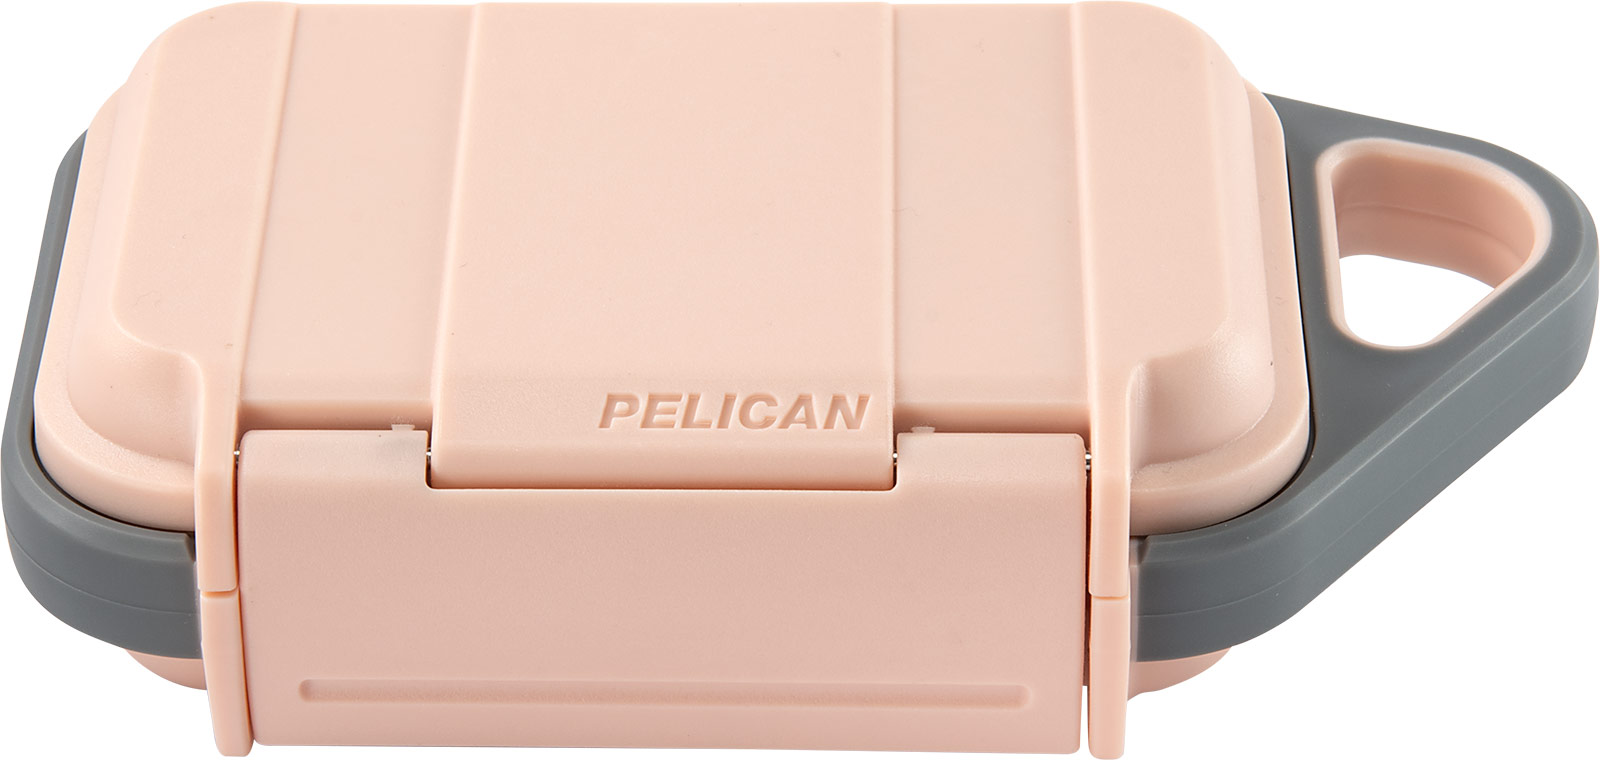 pelican g10 small pink utility go case